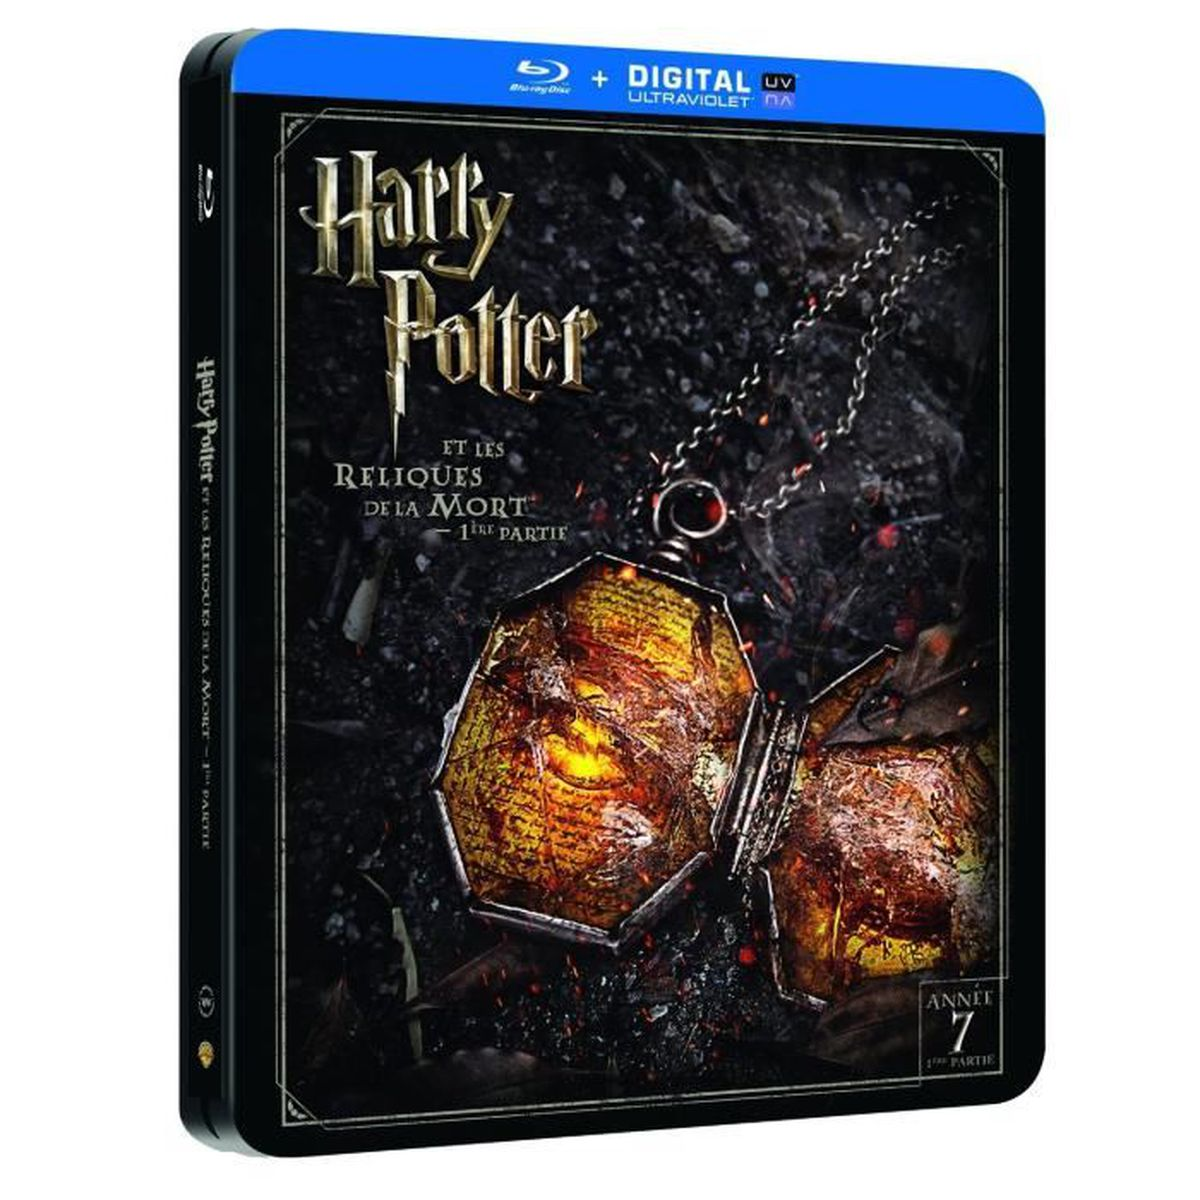 blu ray harry potter les reliques de la mort en blu ray film pas cher cdiscount. Black Bedroom Furniture Sets. Home Design Ideas